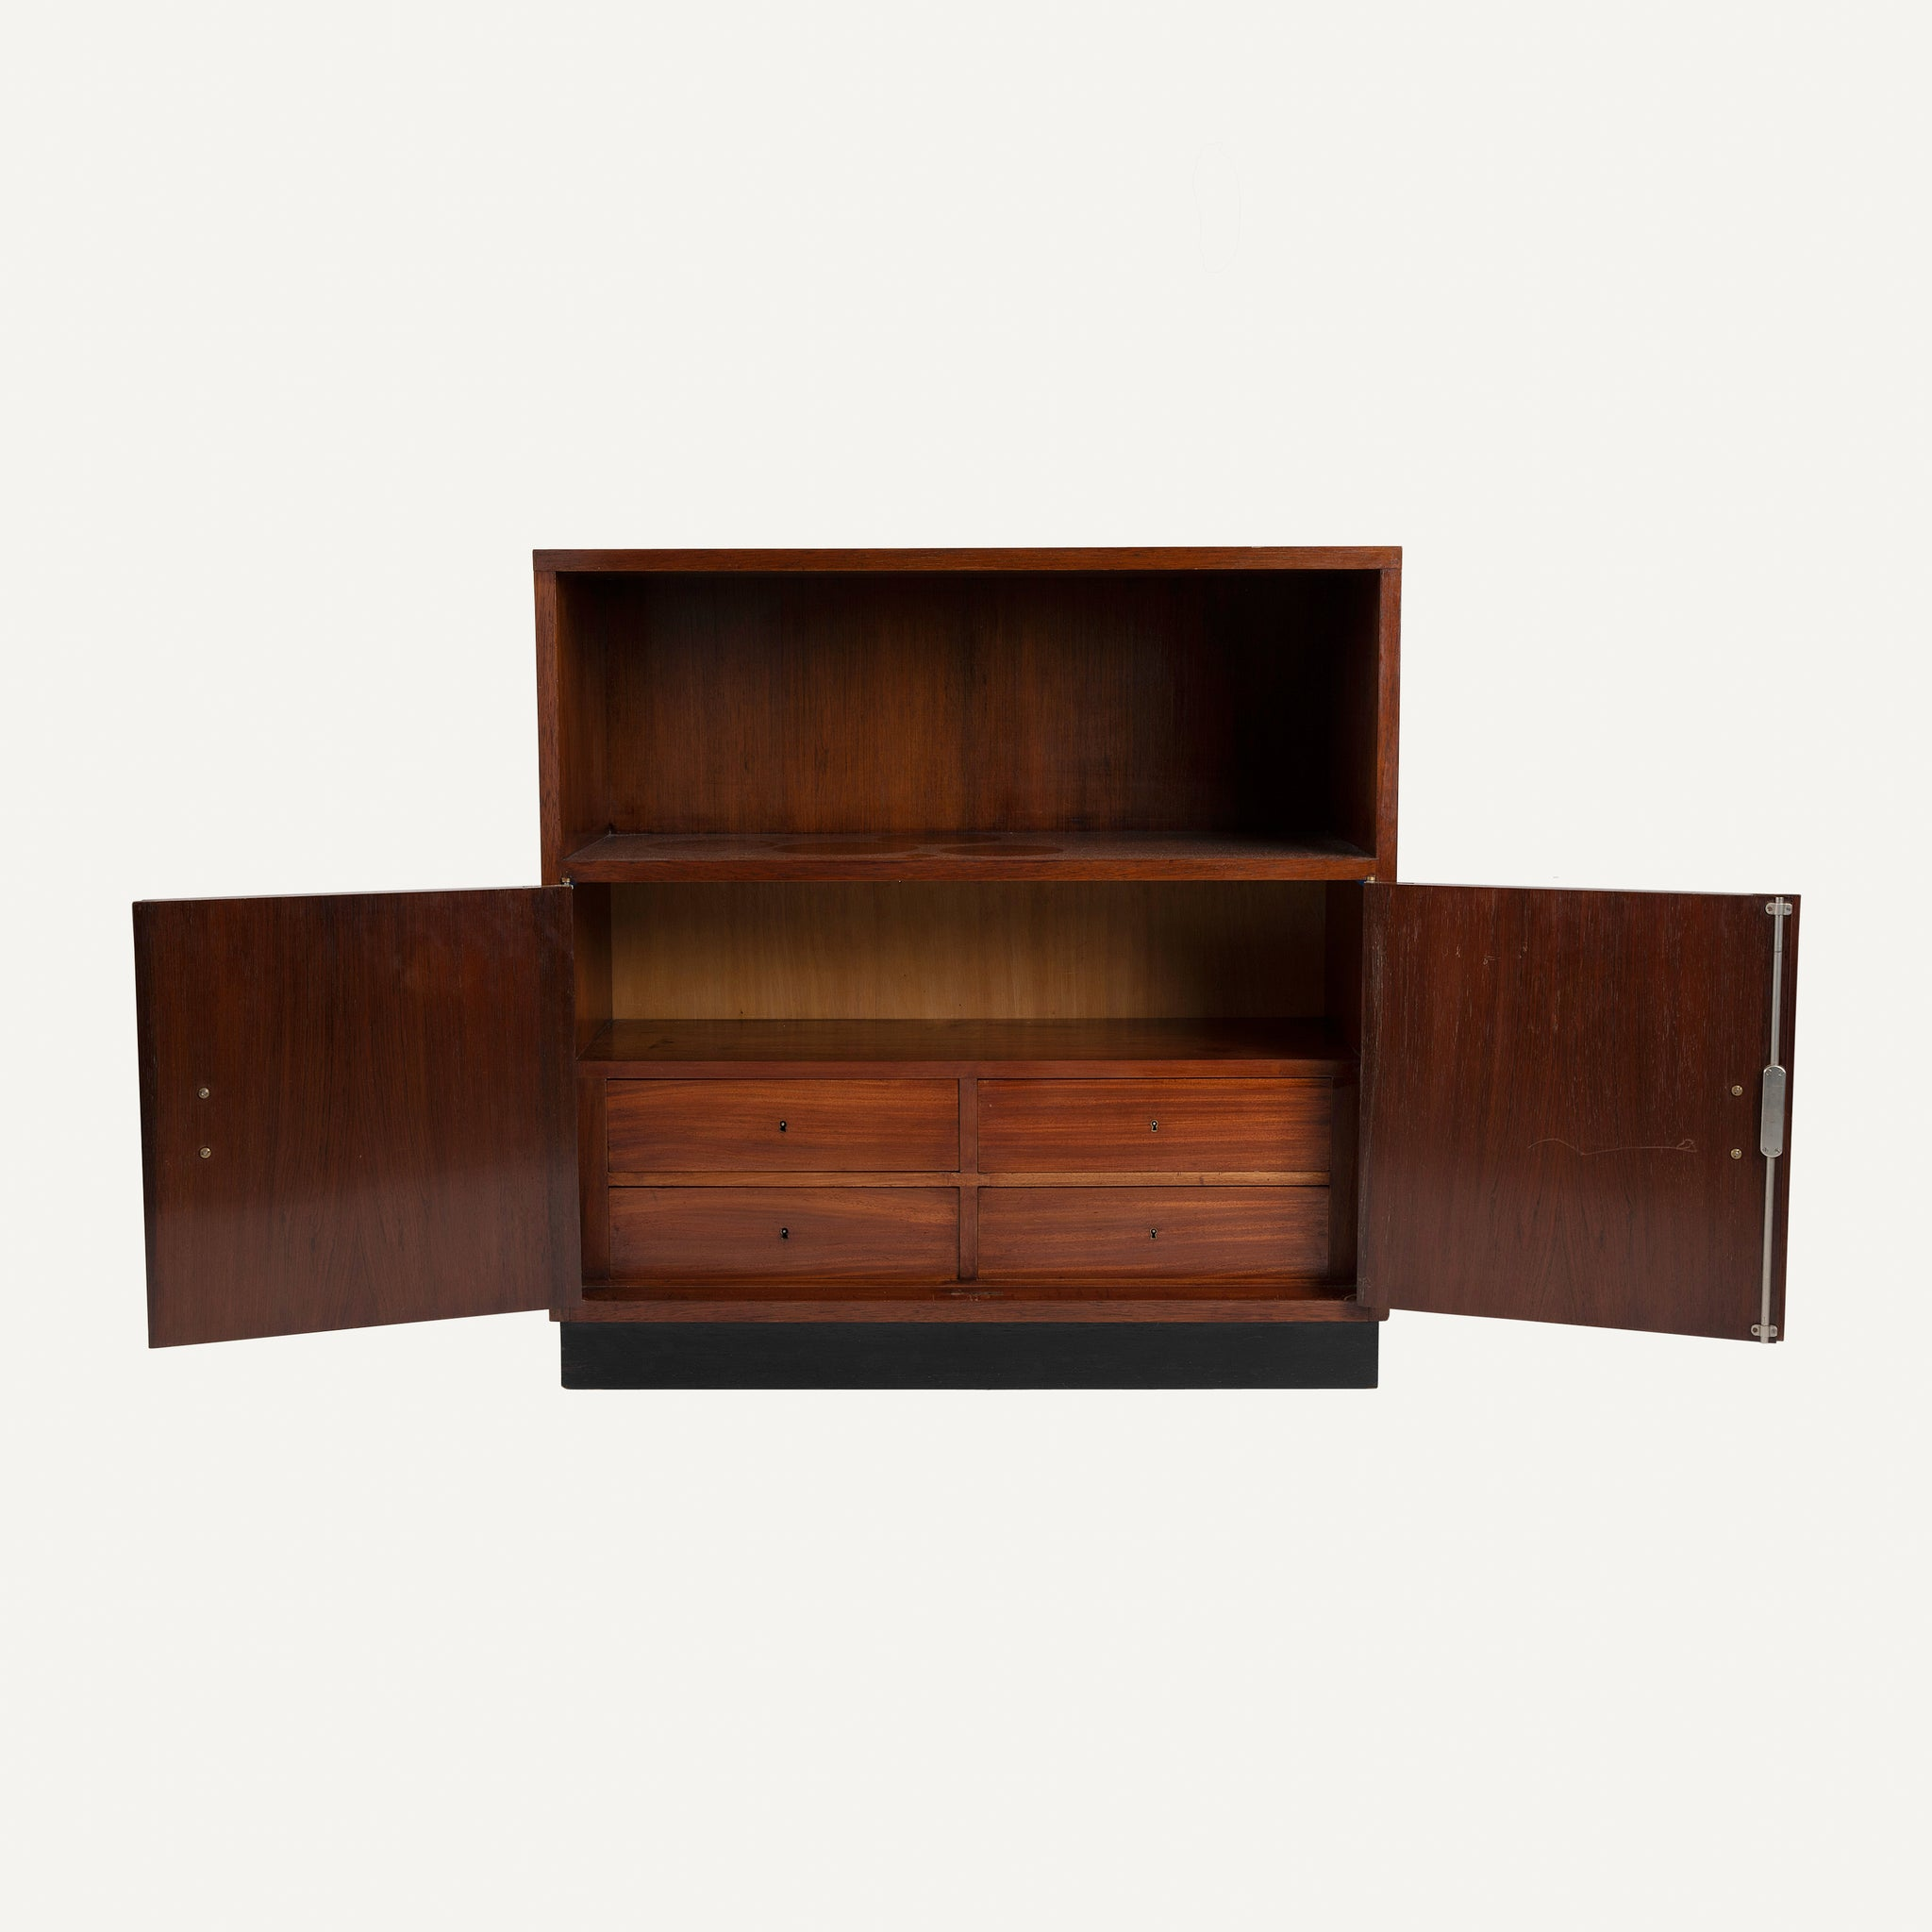 FRENCH ART DECO MAHOGANY CABINET